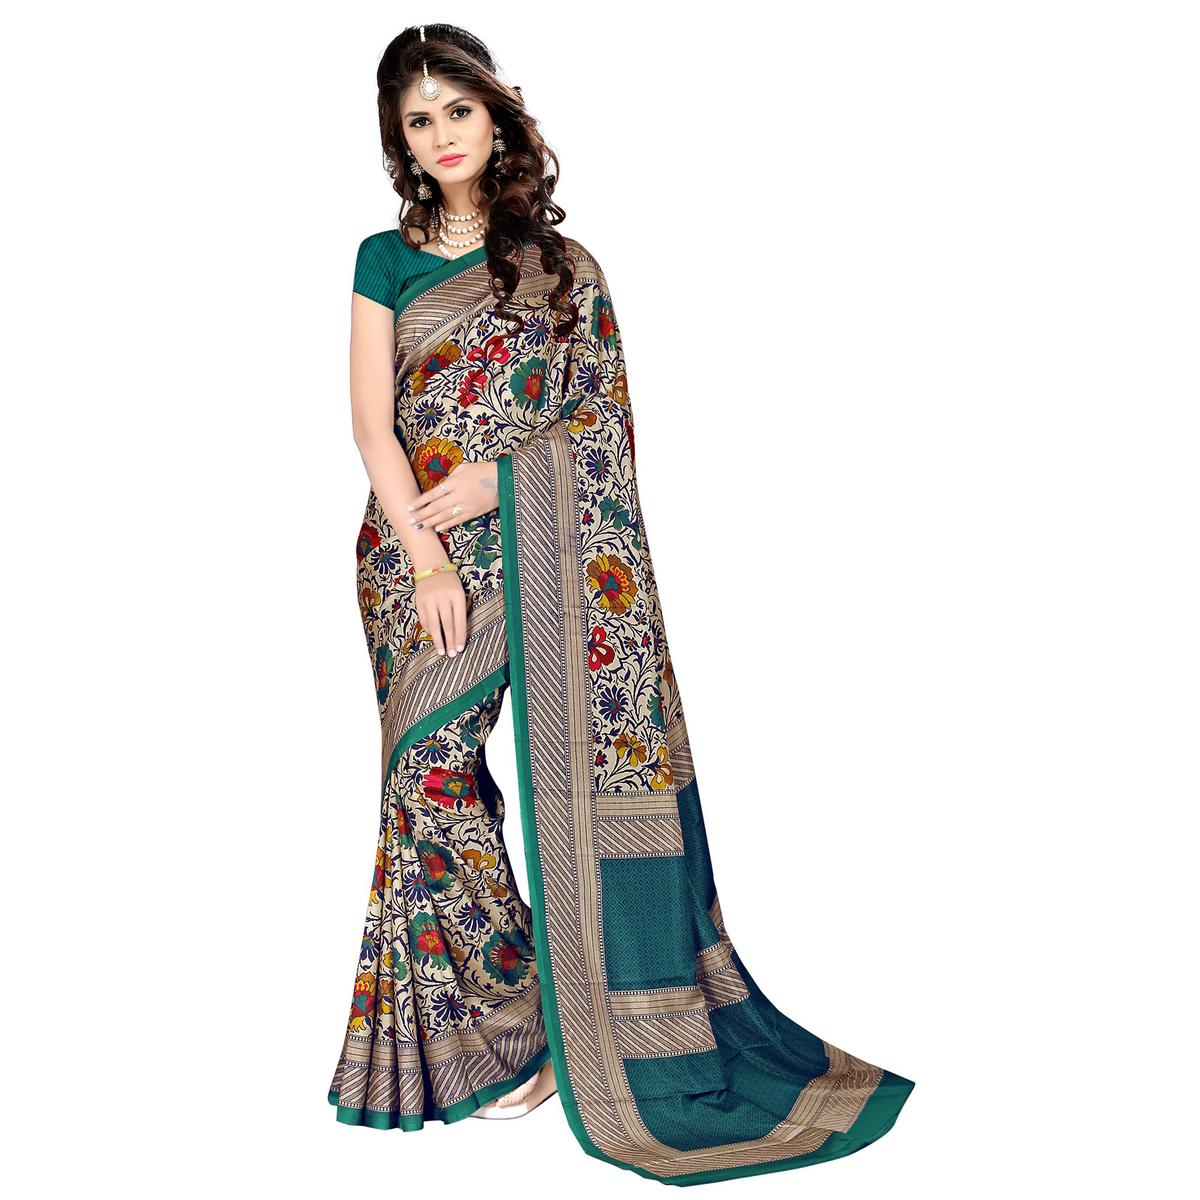 Starring Cream - Teal Green Colored Casual Wear Printed Malgudi Silk Saree